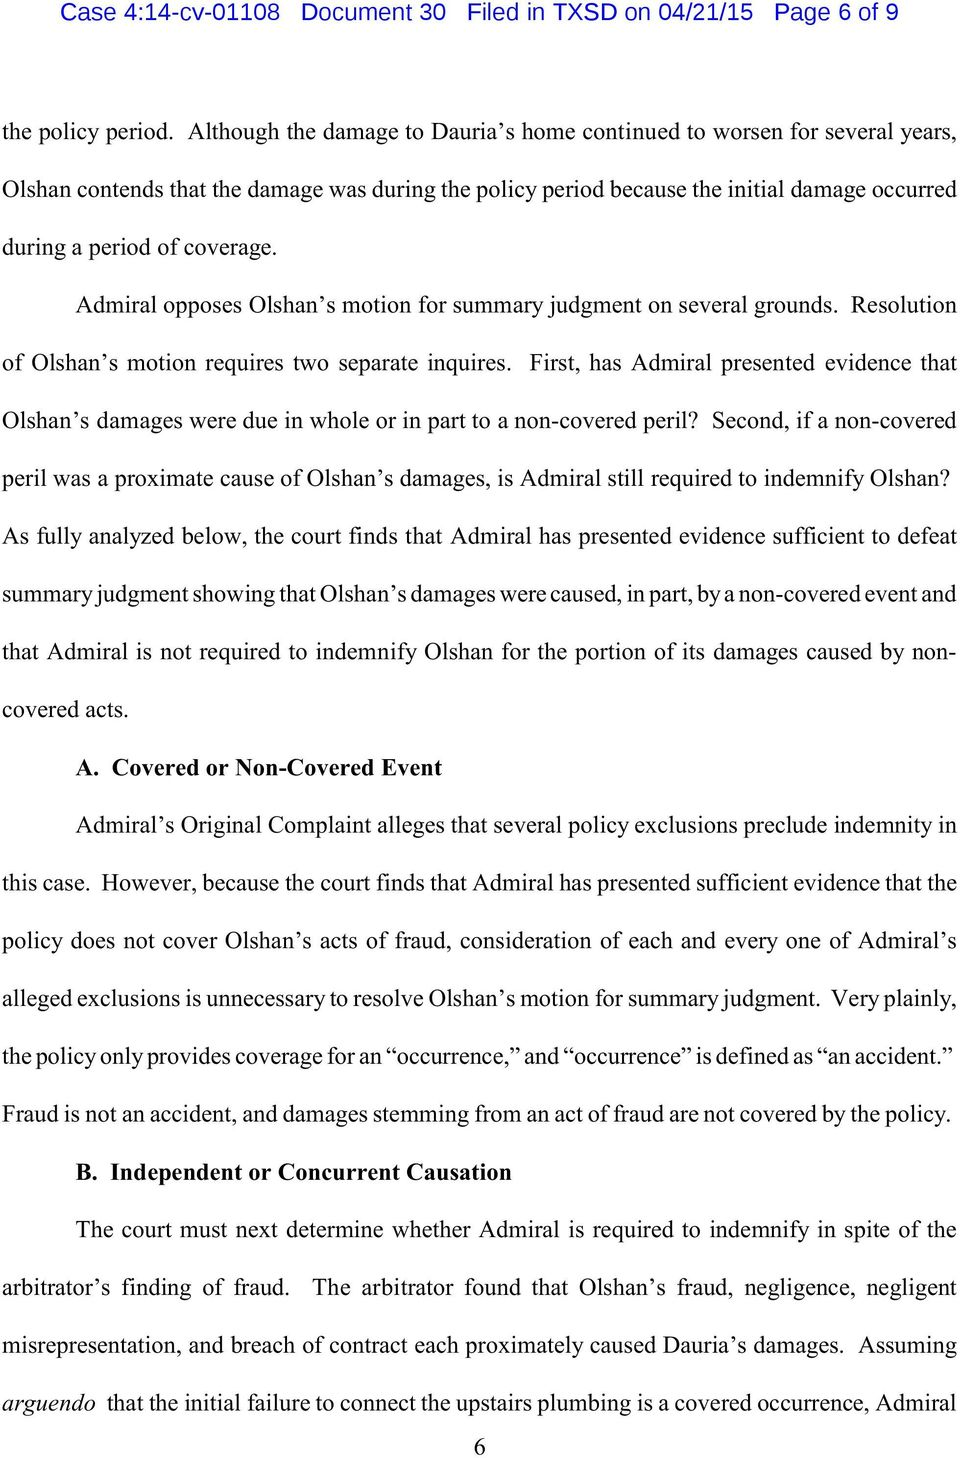 coverage. Admiral opposes Olshan s motion for summary judgment on several grounds. Resolution of Olshan s motion requires two separate inquires.